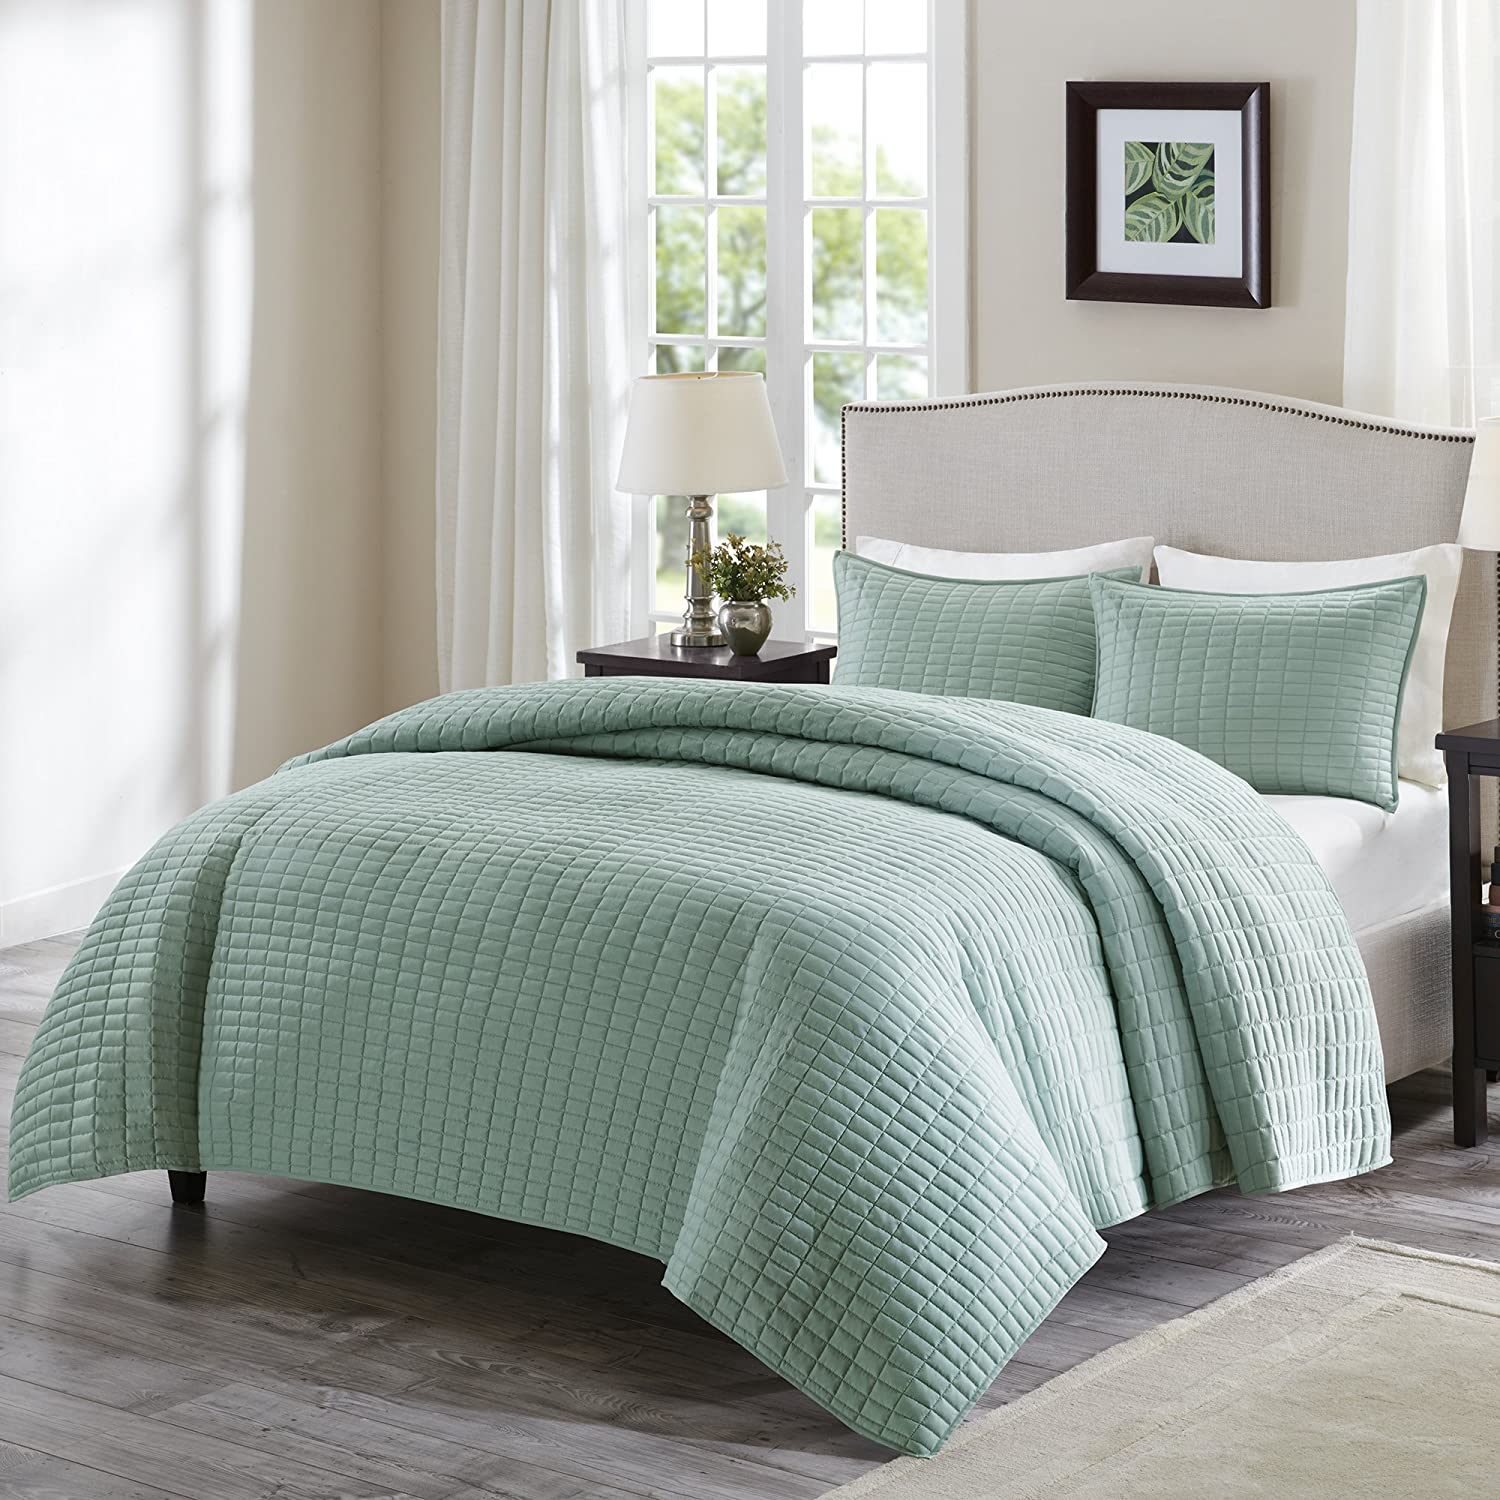 Comfort Spaces - Kienna Quilt Mini Set - 3 Piece - Sea foam - Stitched Quilt Pattern  Queen size